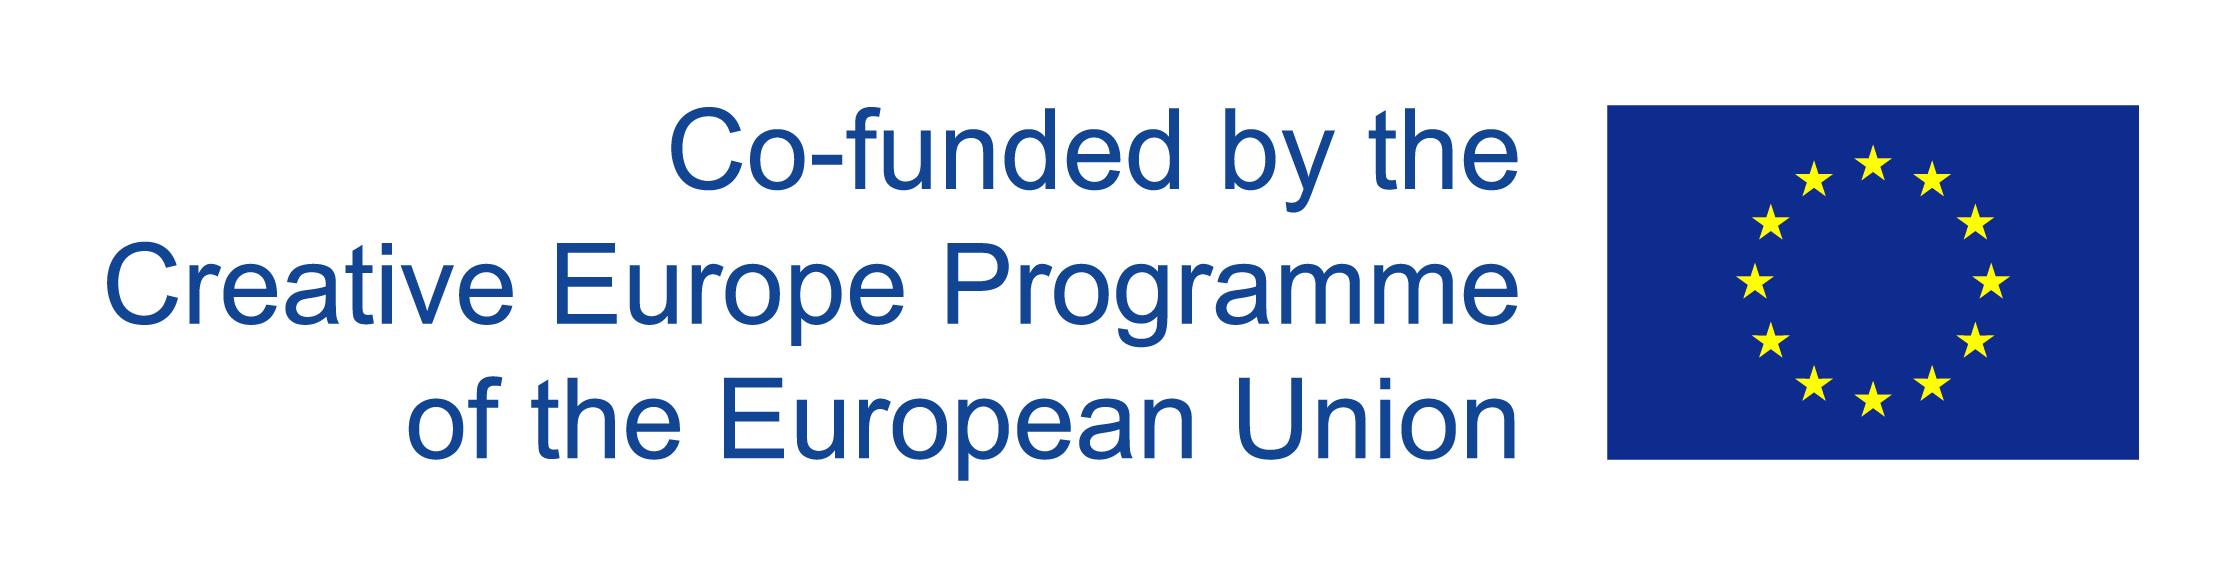 Co-funded by EU